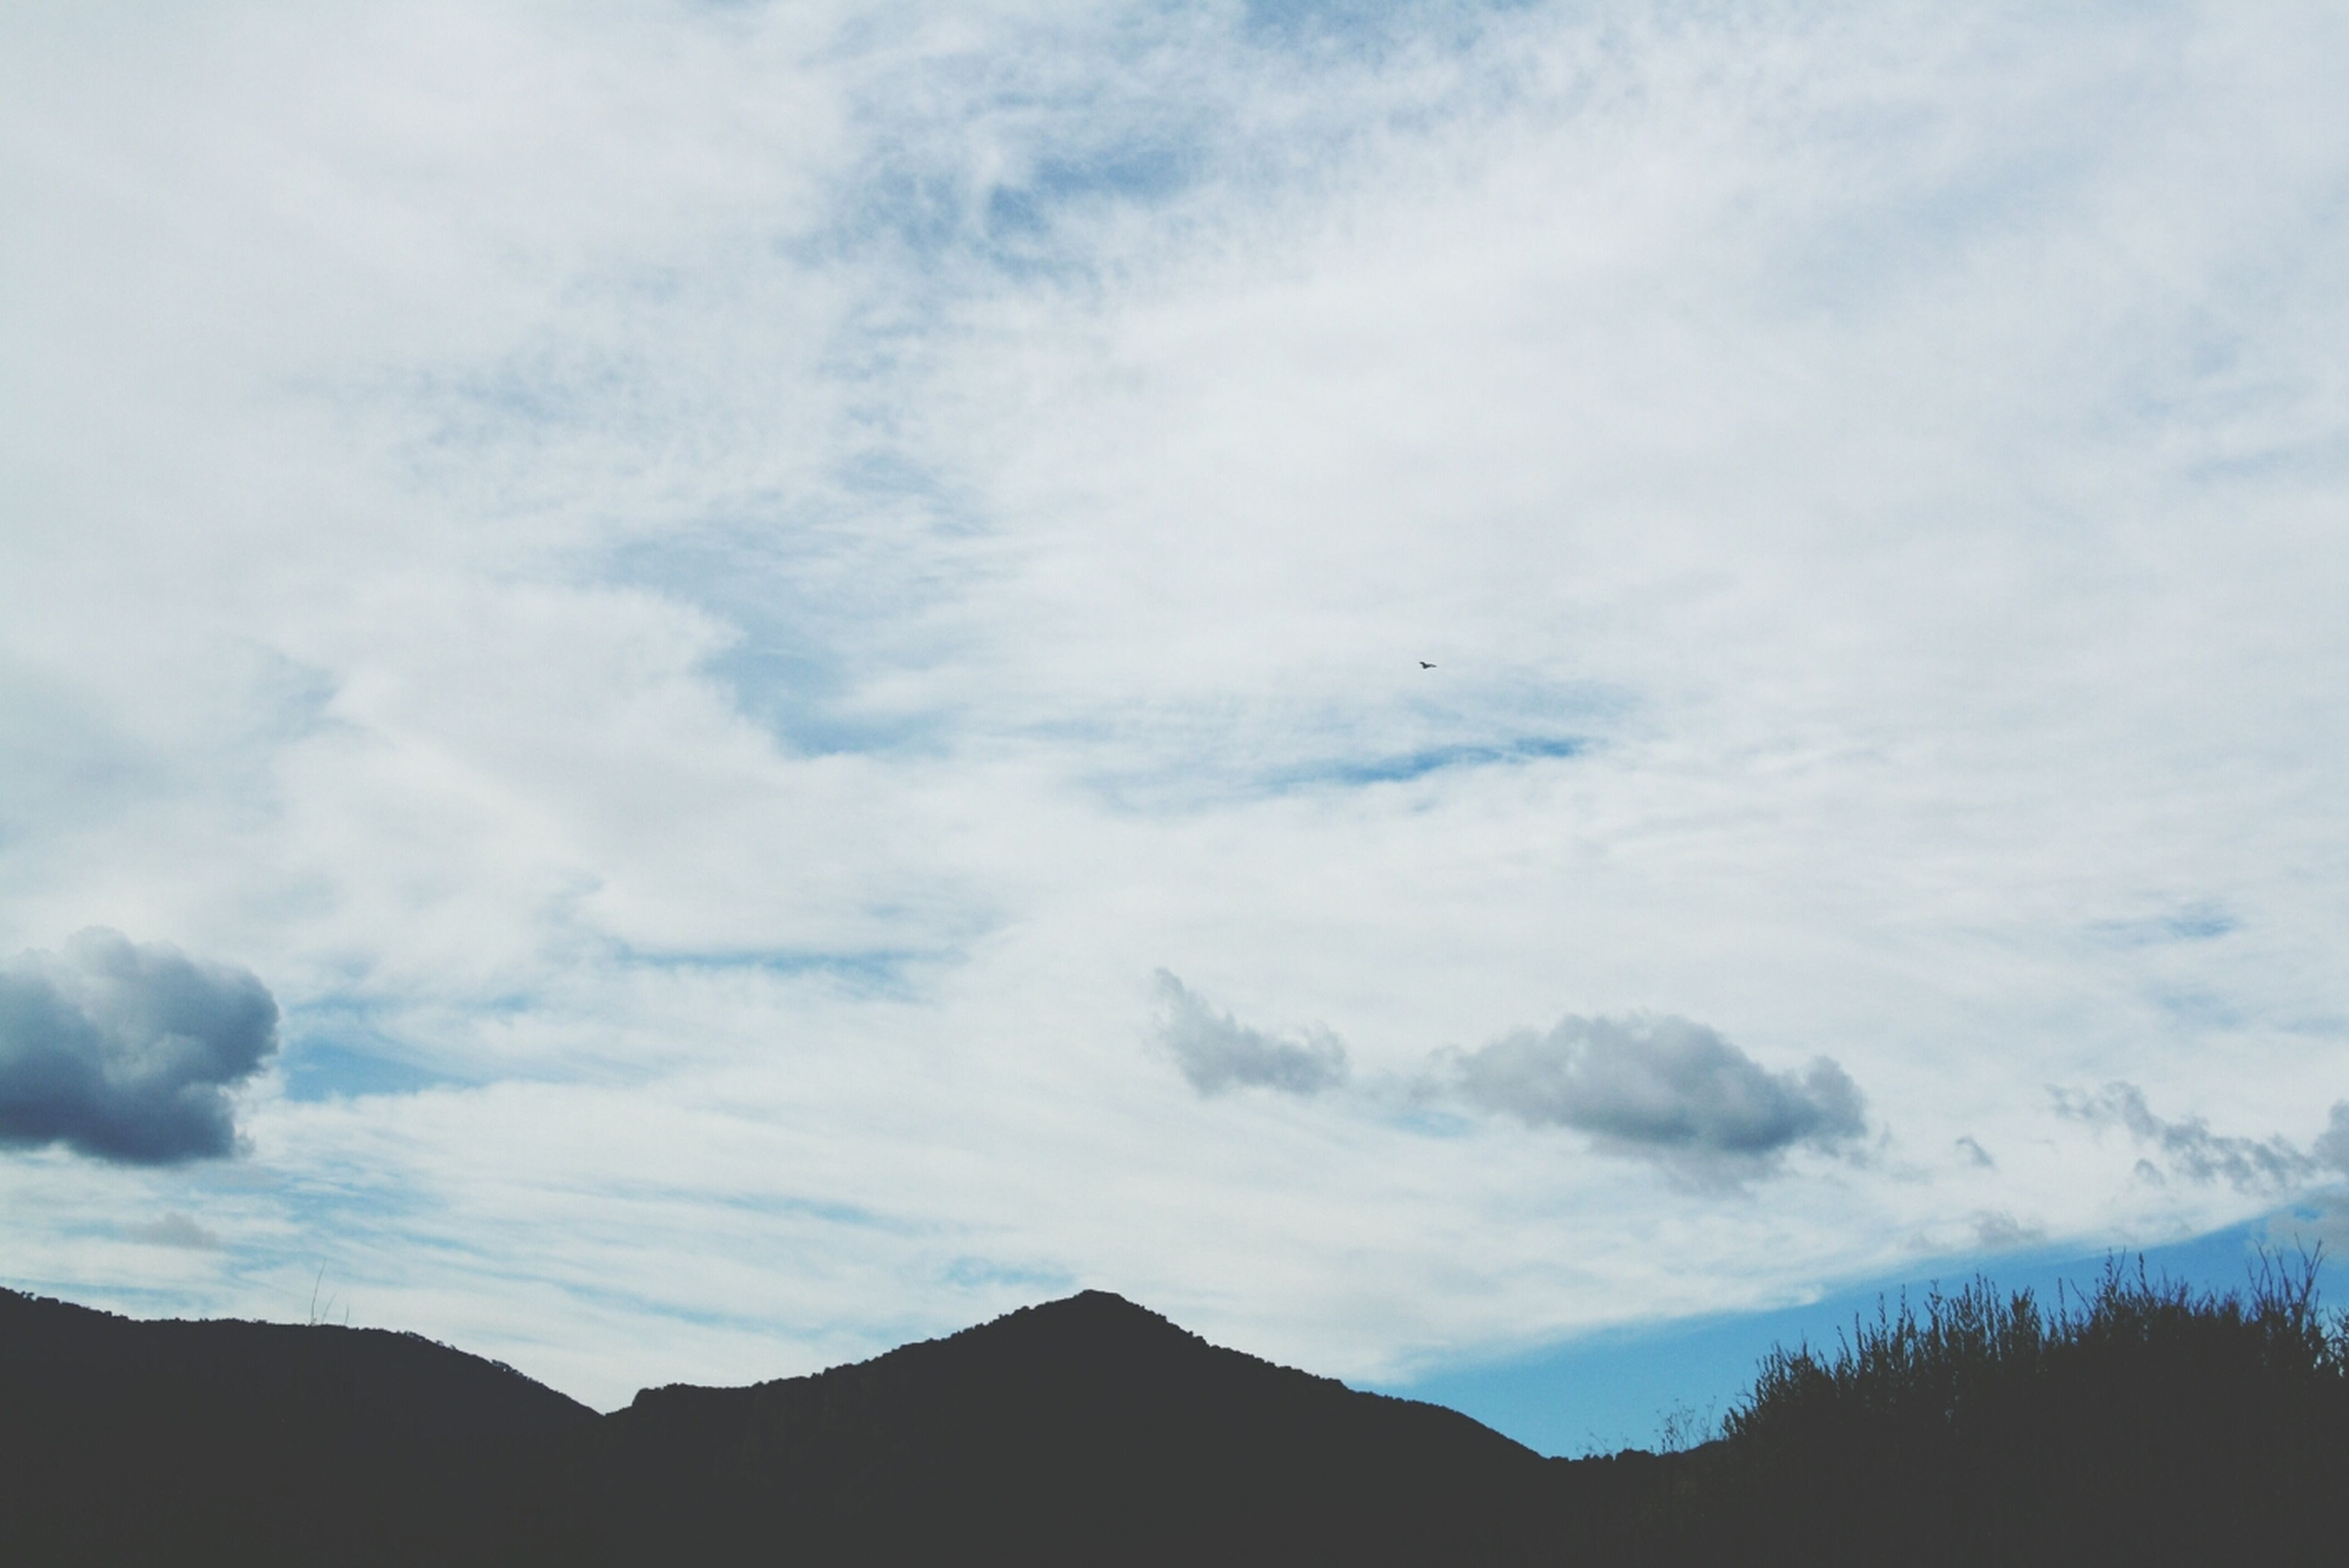 mountain, sky, tranquil scene, tranquility, scenics, beauty in nature, mountain range, cloud - sky, nature, low angle view, silhouette, cloud, cloudy, landscape, idyllic, tree, outdoors, non-urban scene, day, no people